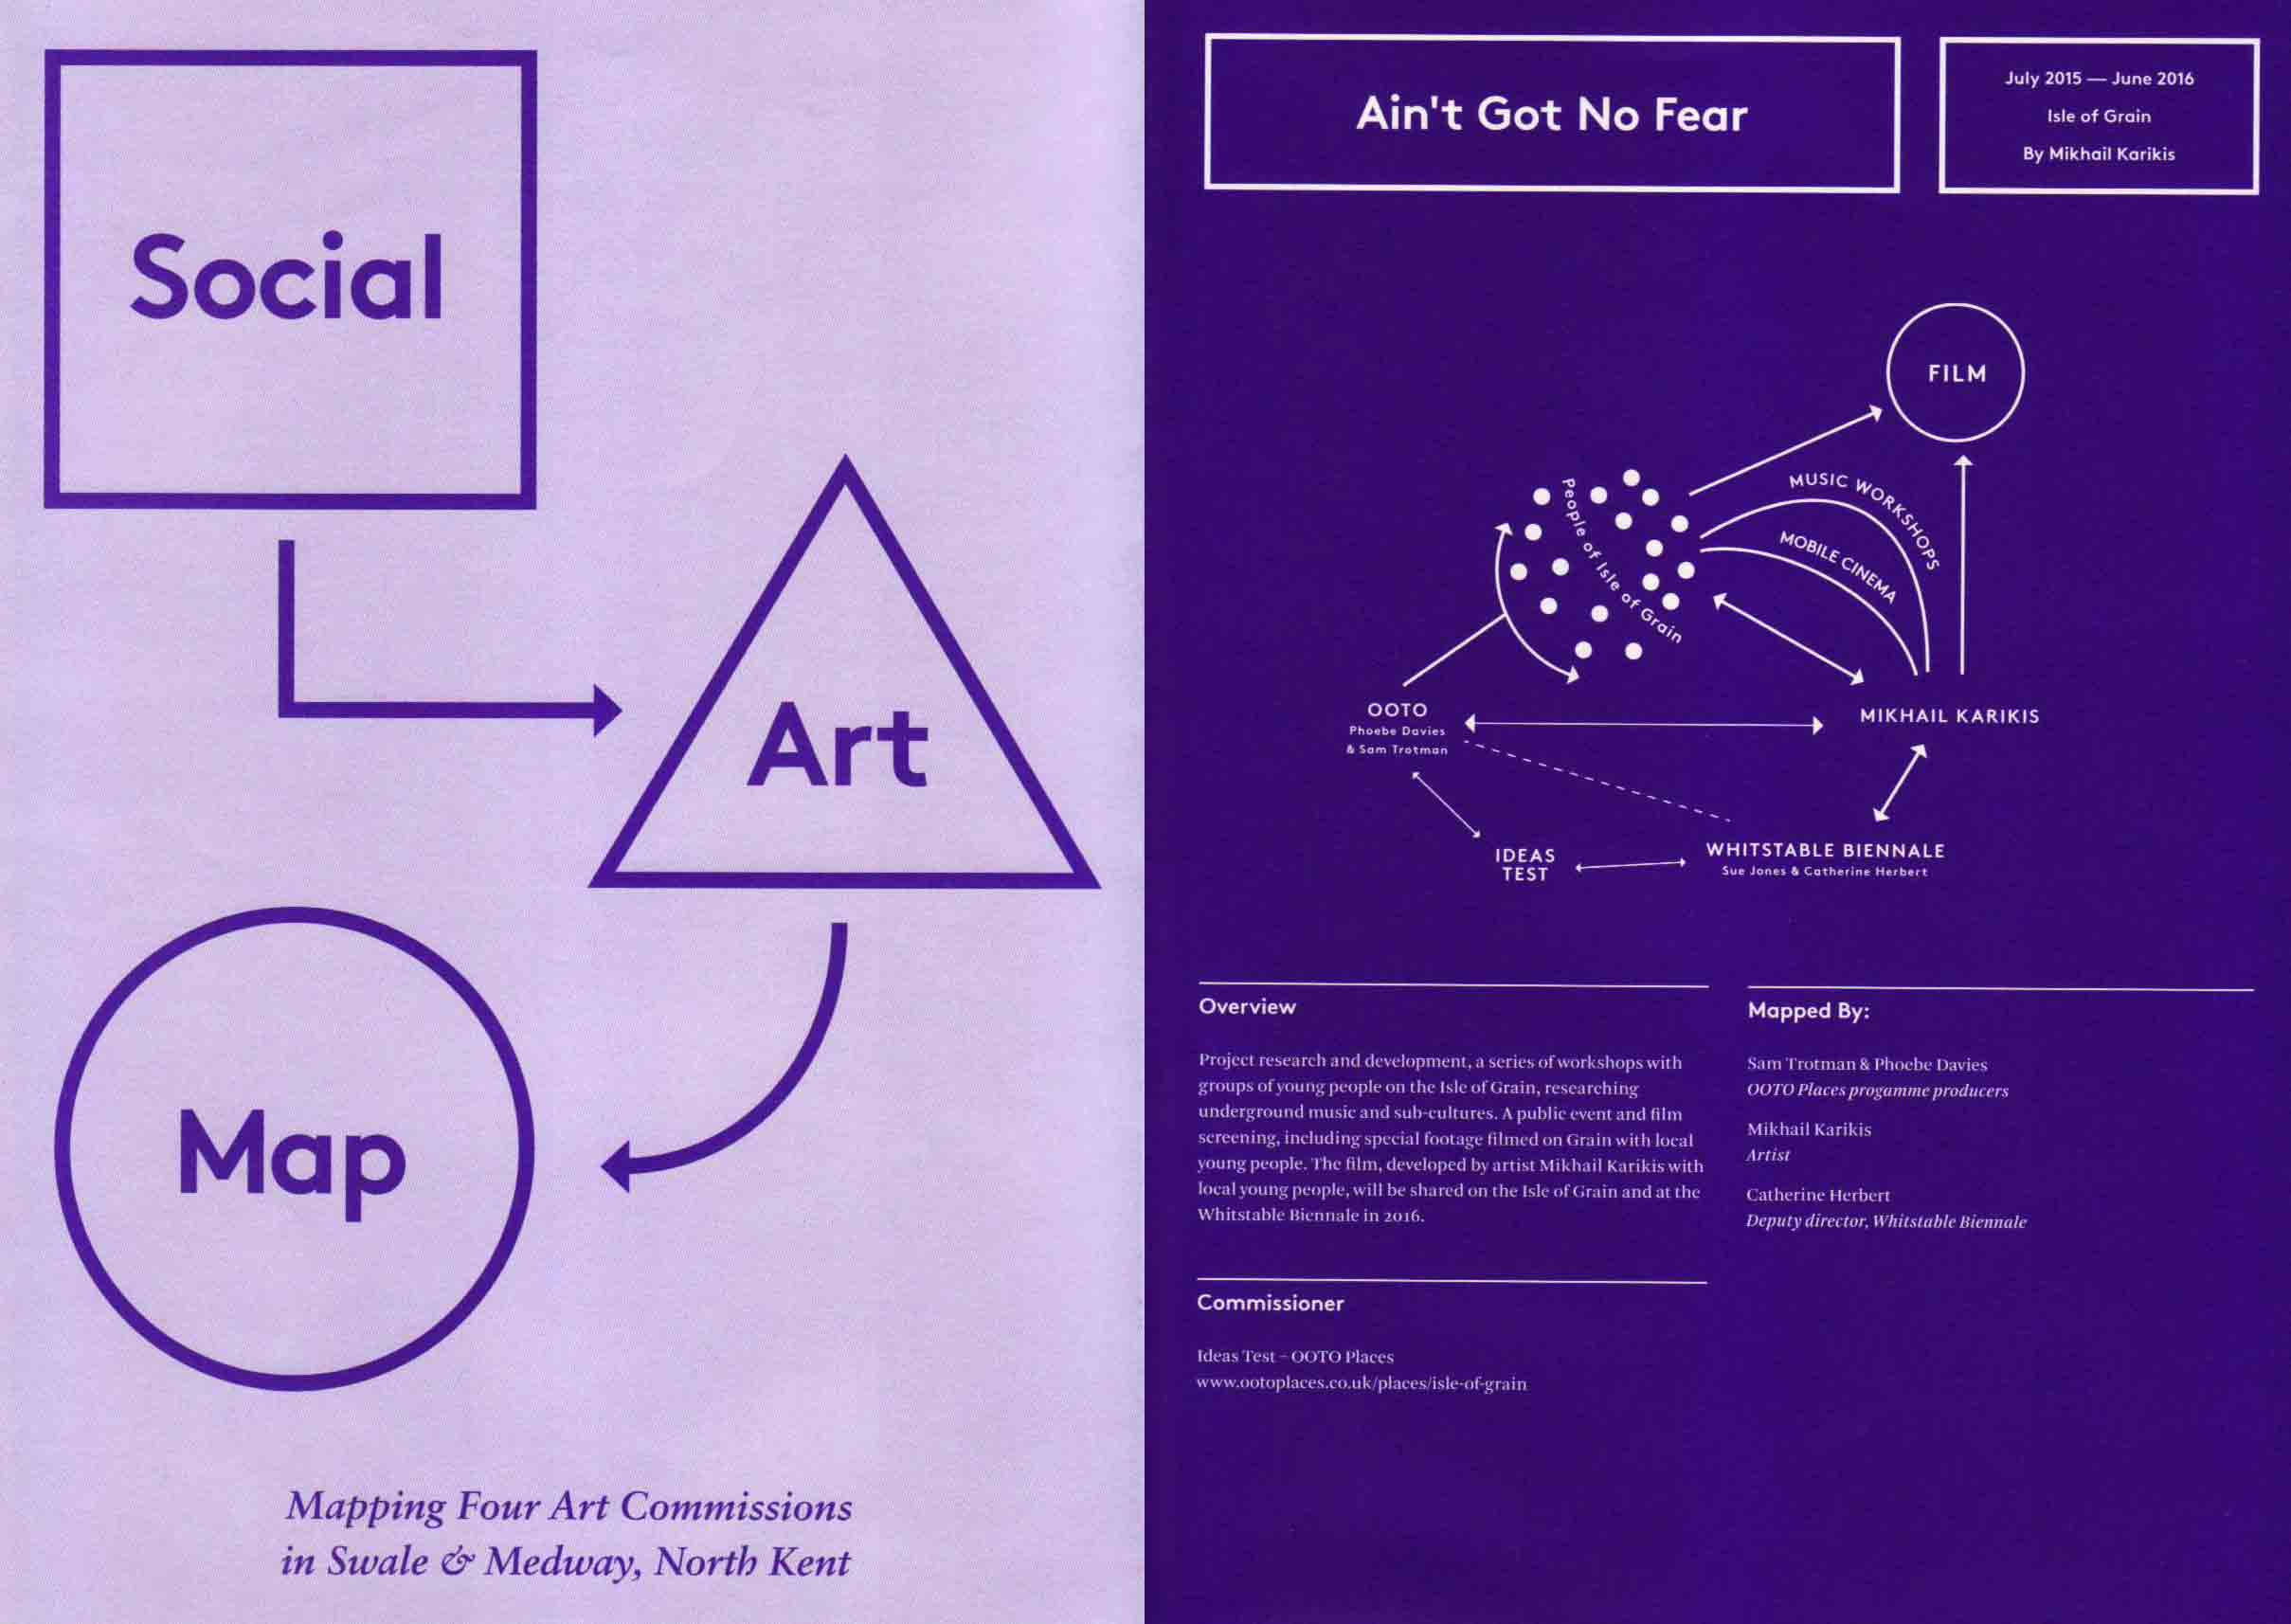 Social Art Map (publication on Ain't Got No Fear)